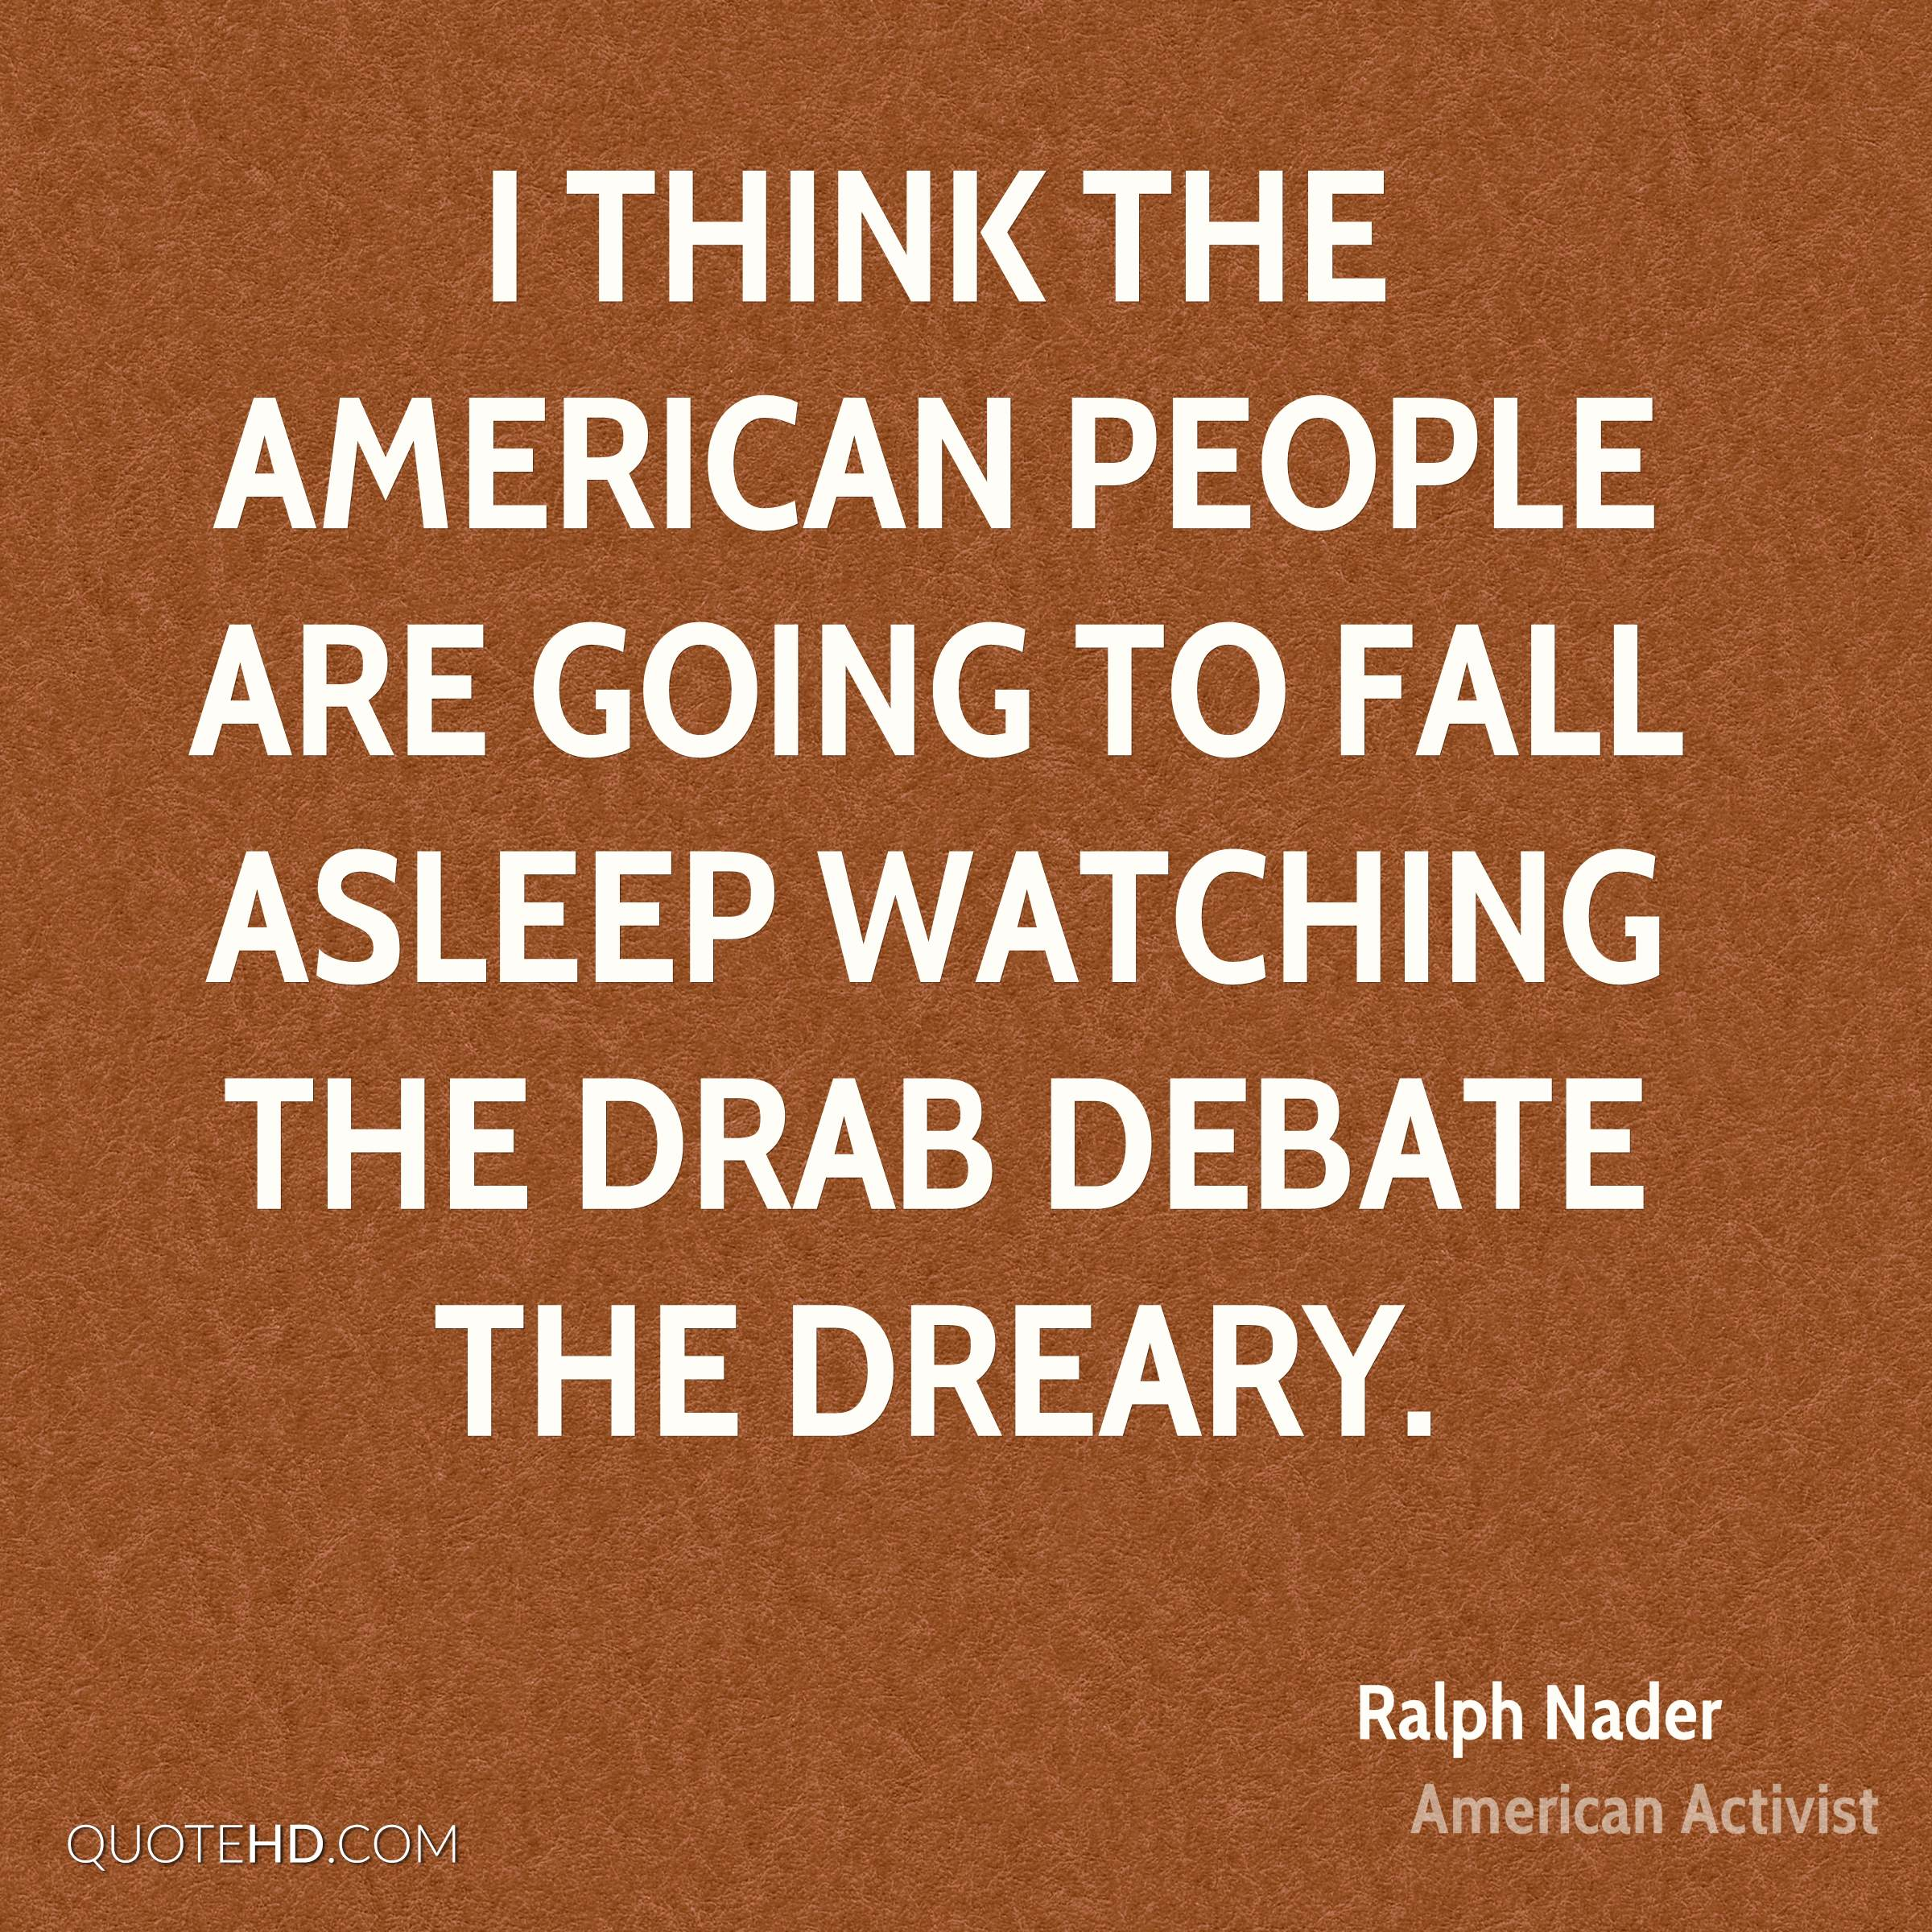 I think the American people are going to fall asleep watching the drab debate the dreary.